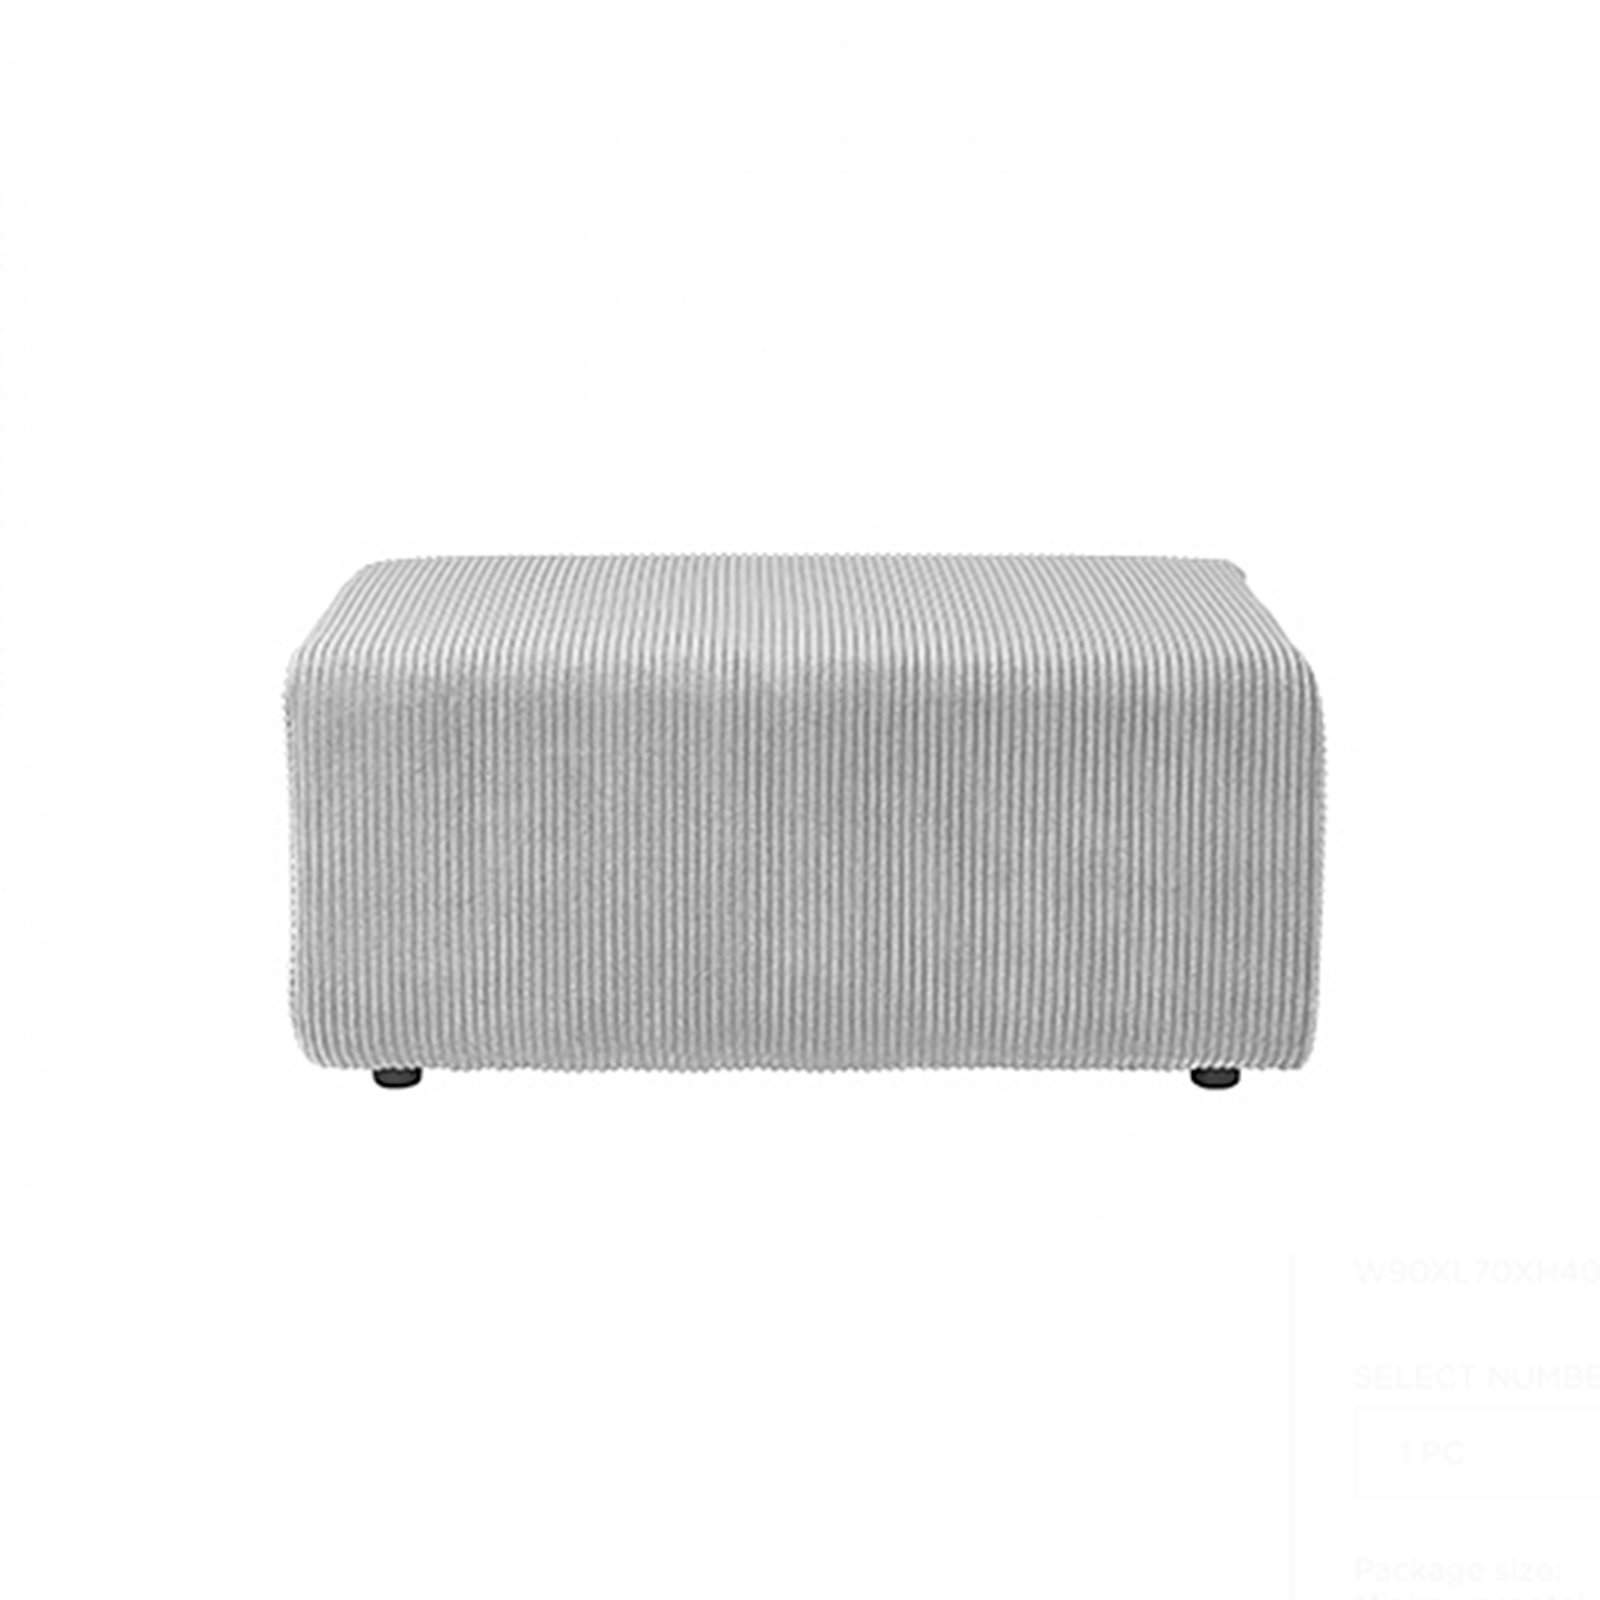 image-COLINROY SECTIONAL POUF, Stone